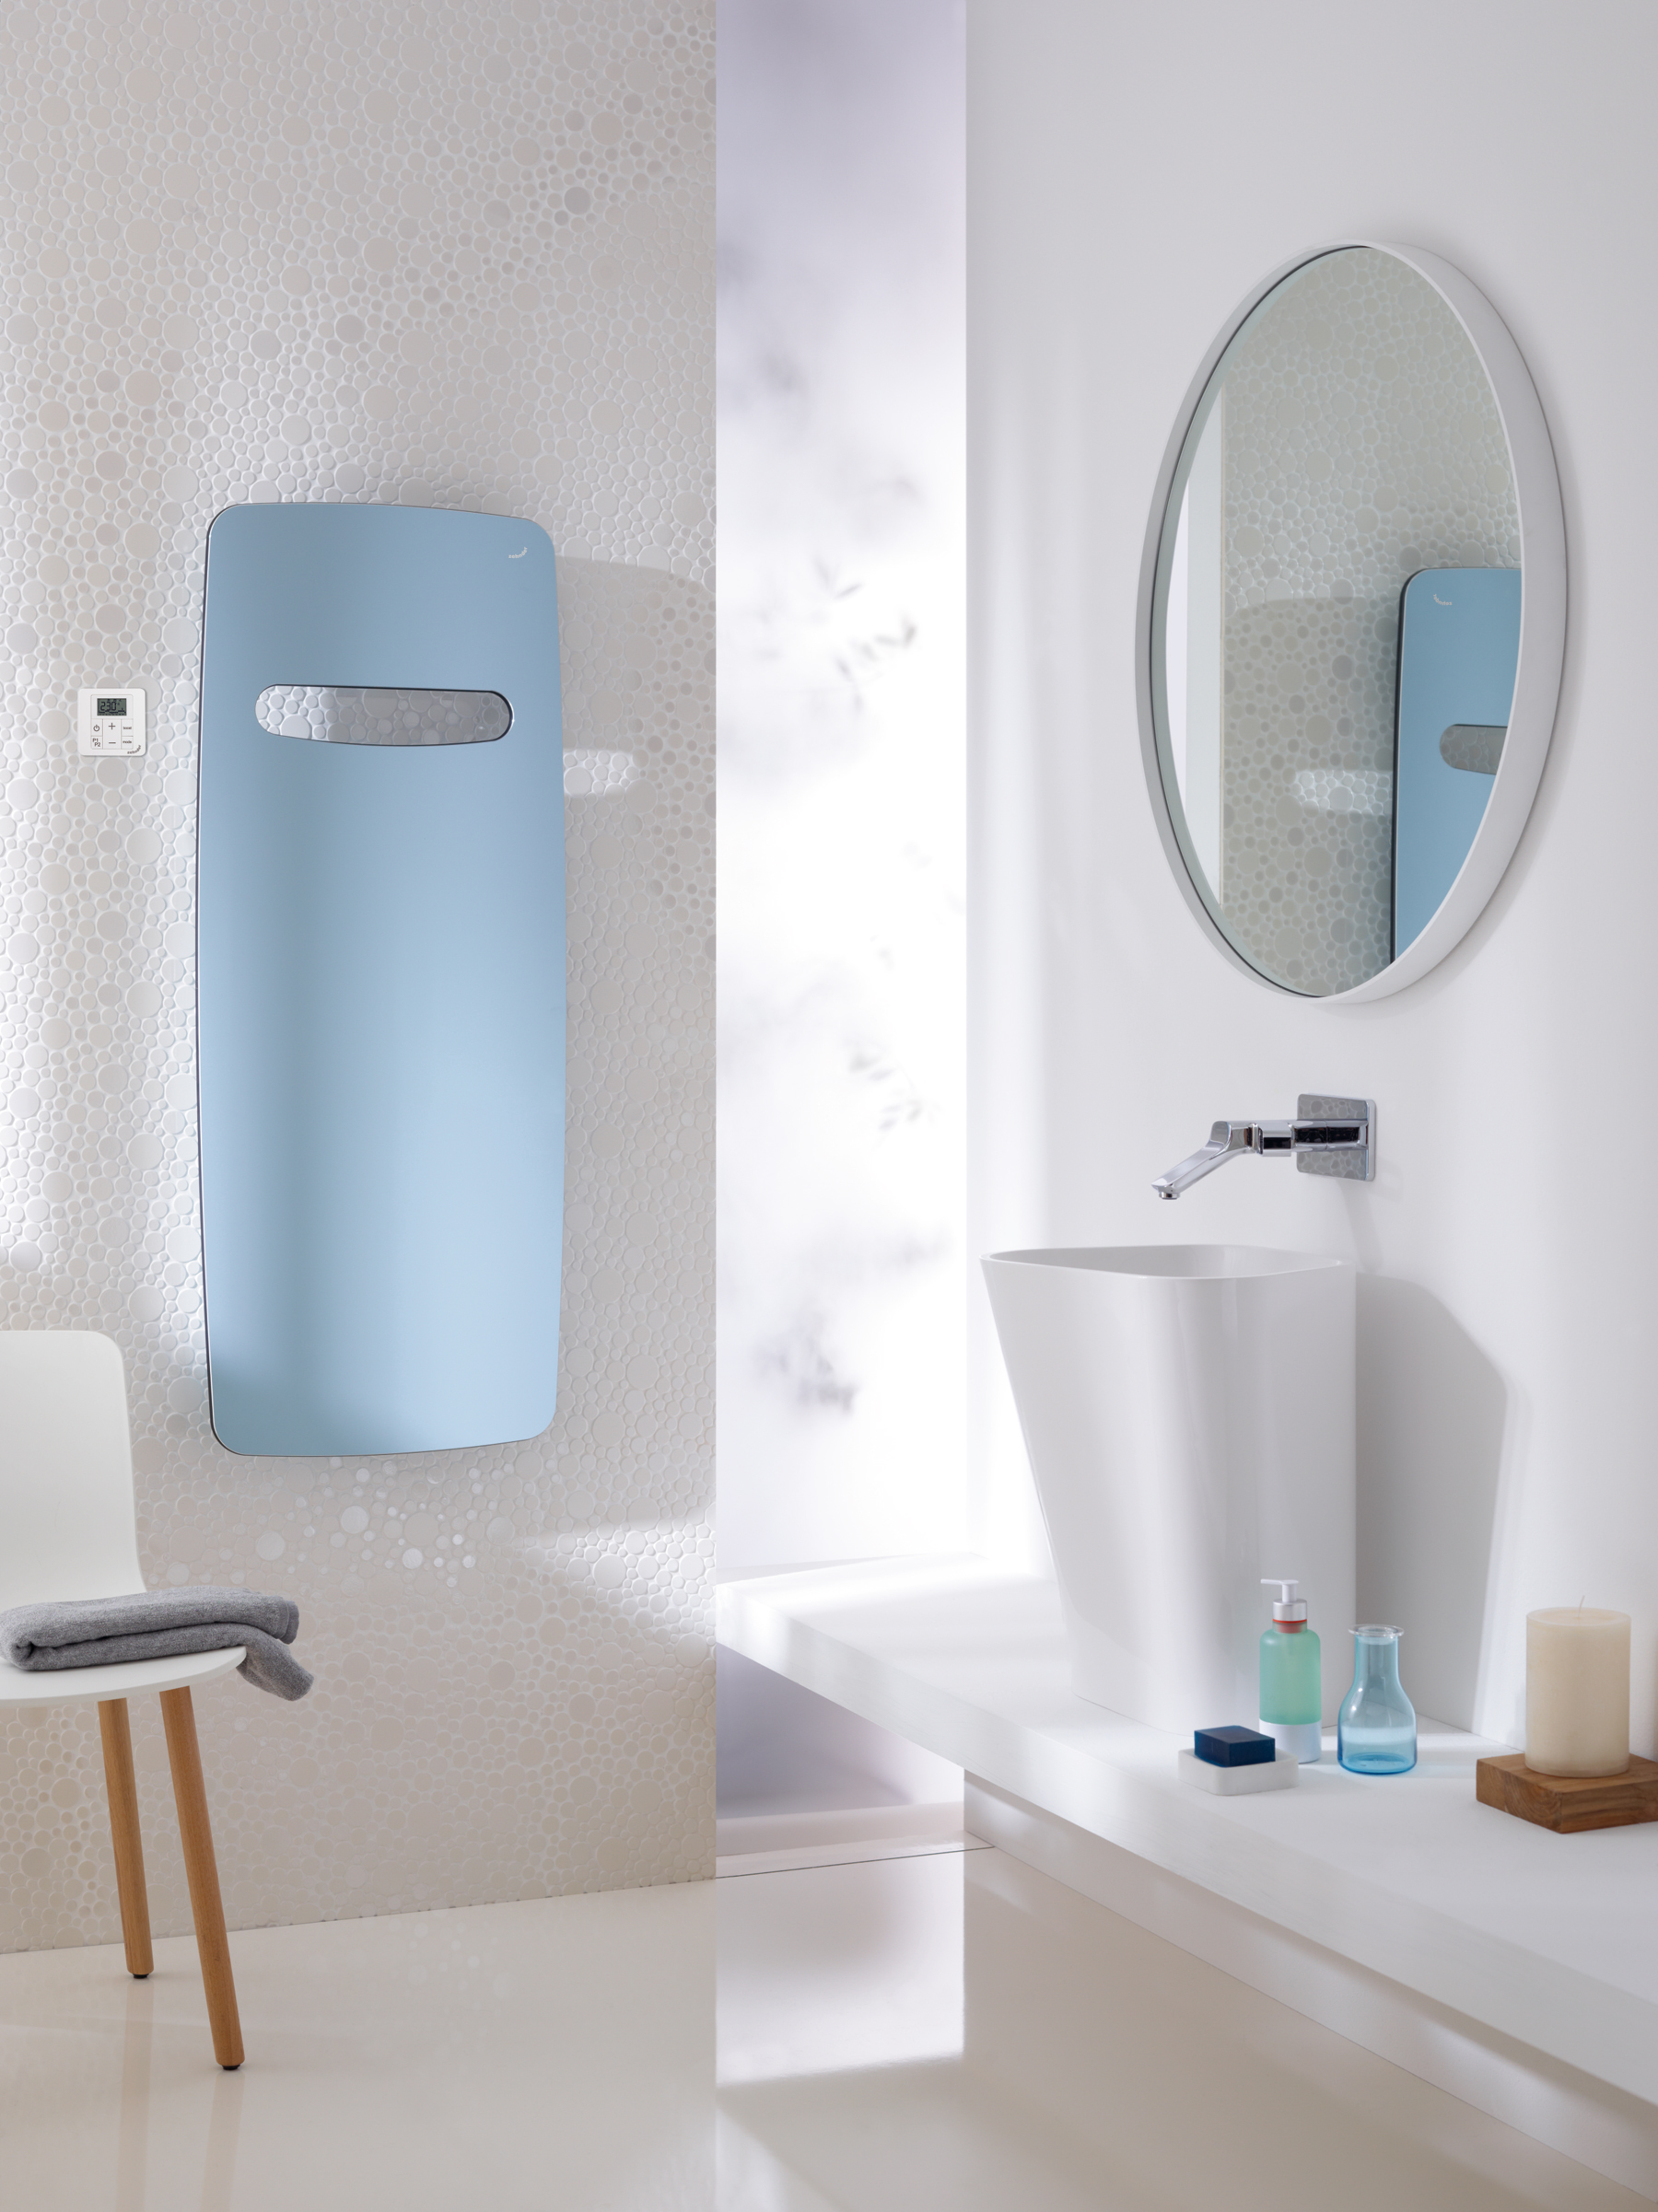 Nariadenie ecodesign foto - Zehnder-RAD-Vitalo-Spa-RACY-S-50mm-bathroom-1500-590-people-pacific-blue_Print_25812